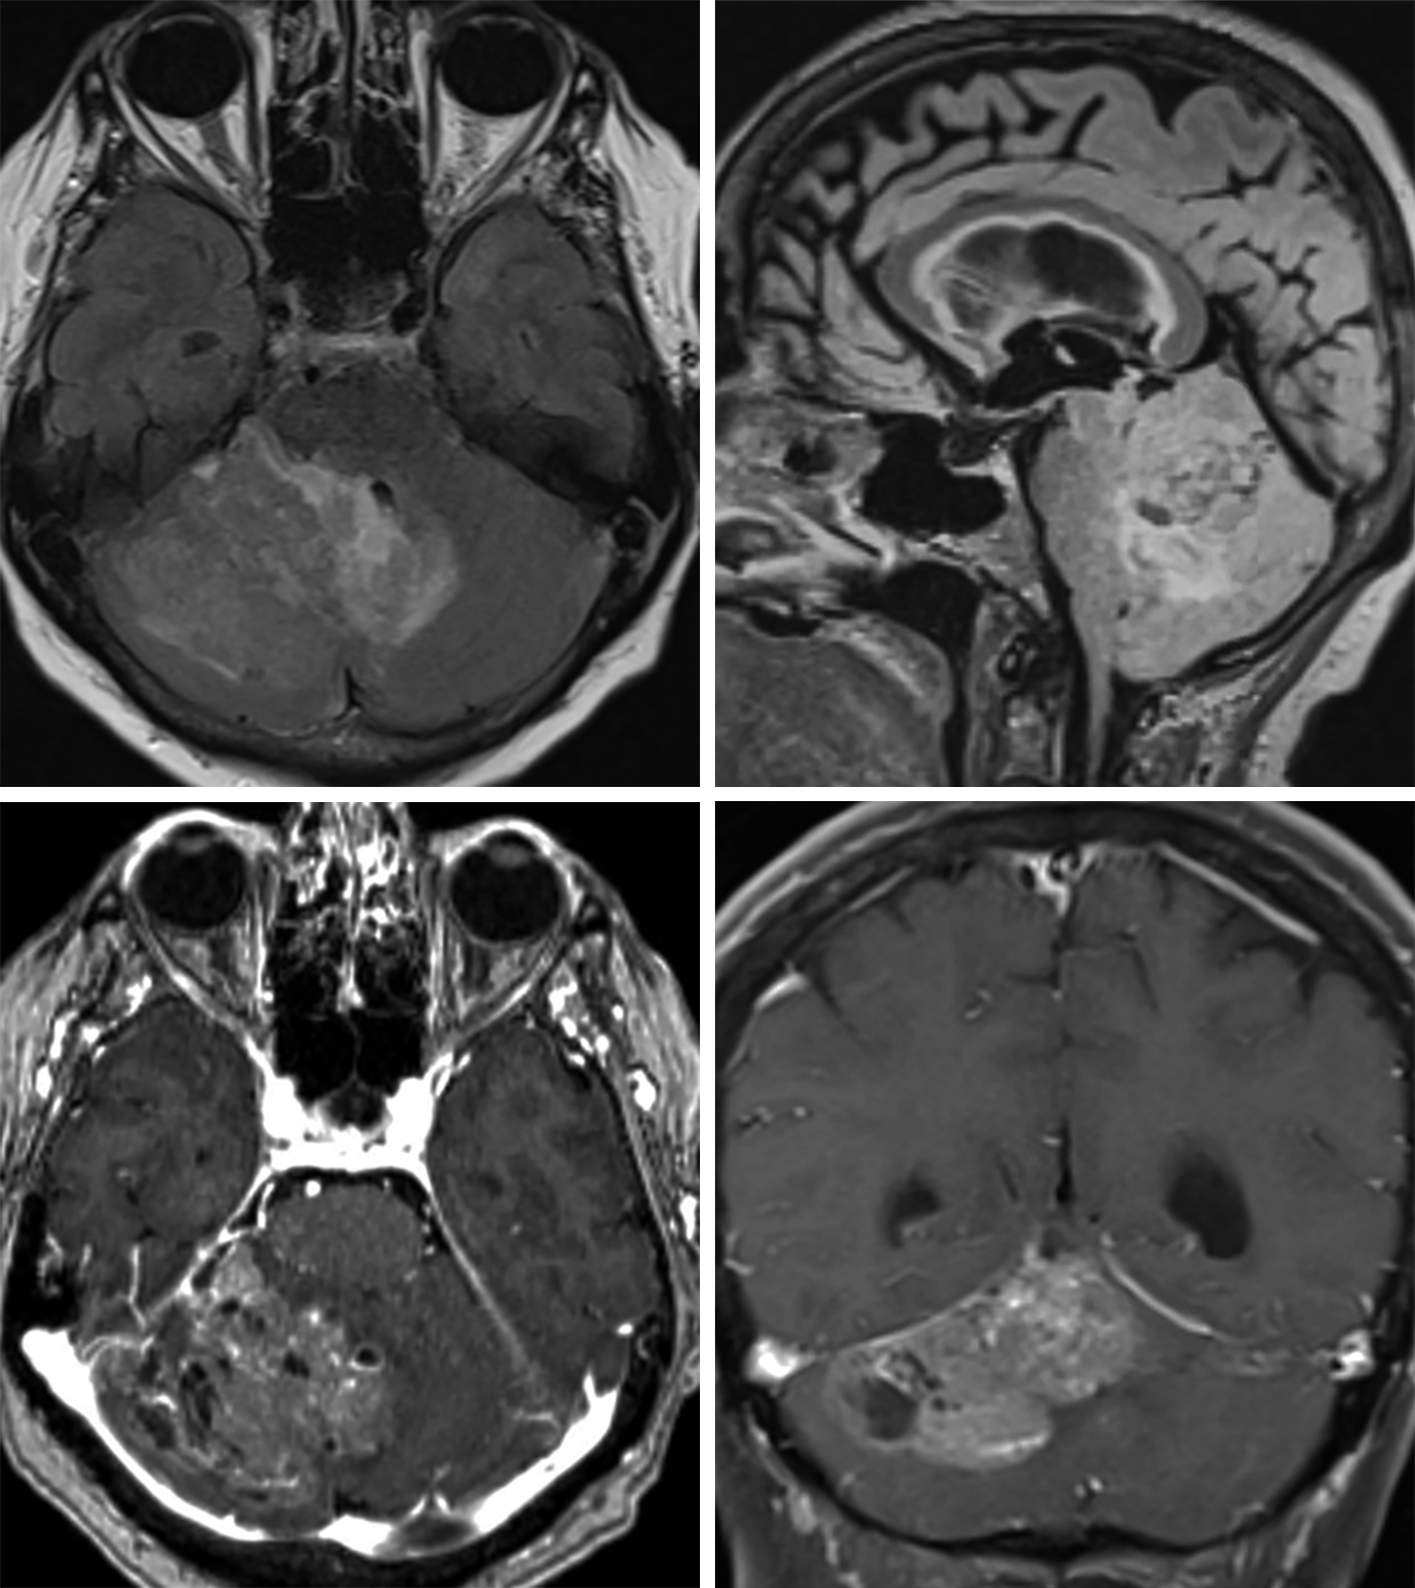 Figure 2: This heterogeneous infiltrative lesion centered in the right cerebellar hemisphere on FLAIR (top left, axial; top right, sagittal) demonstrates only mild associated edema and mild mass effect for the size of the lesion. There are small cystic changes and conspicuous enhancing vessels, and single hemispheric dominance but midline crossing that are typical of dysplastic cerebellar gangliocytoma/L'hermitte-Duclos disease on contrast-enhanced imaging (bottom left, axial; bottom right, coronal). The degree of enhancement is moderate in this patient but highly variable in this type of tumor.